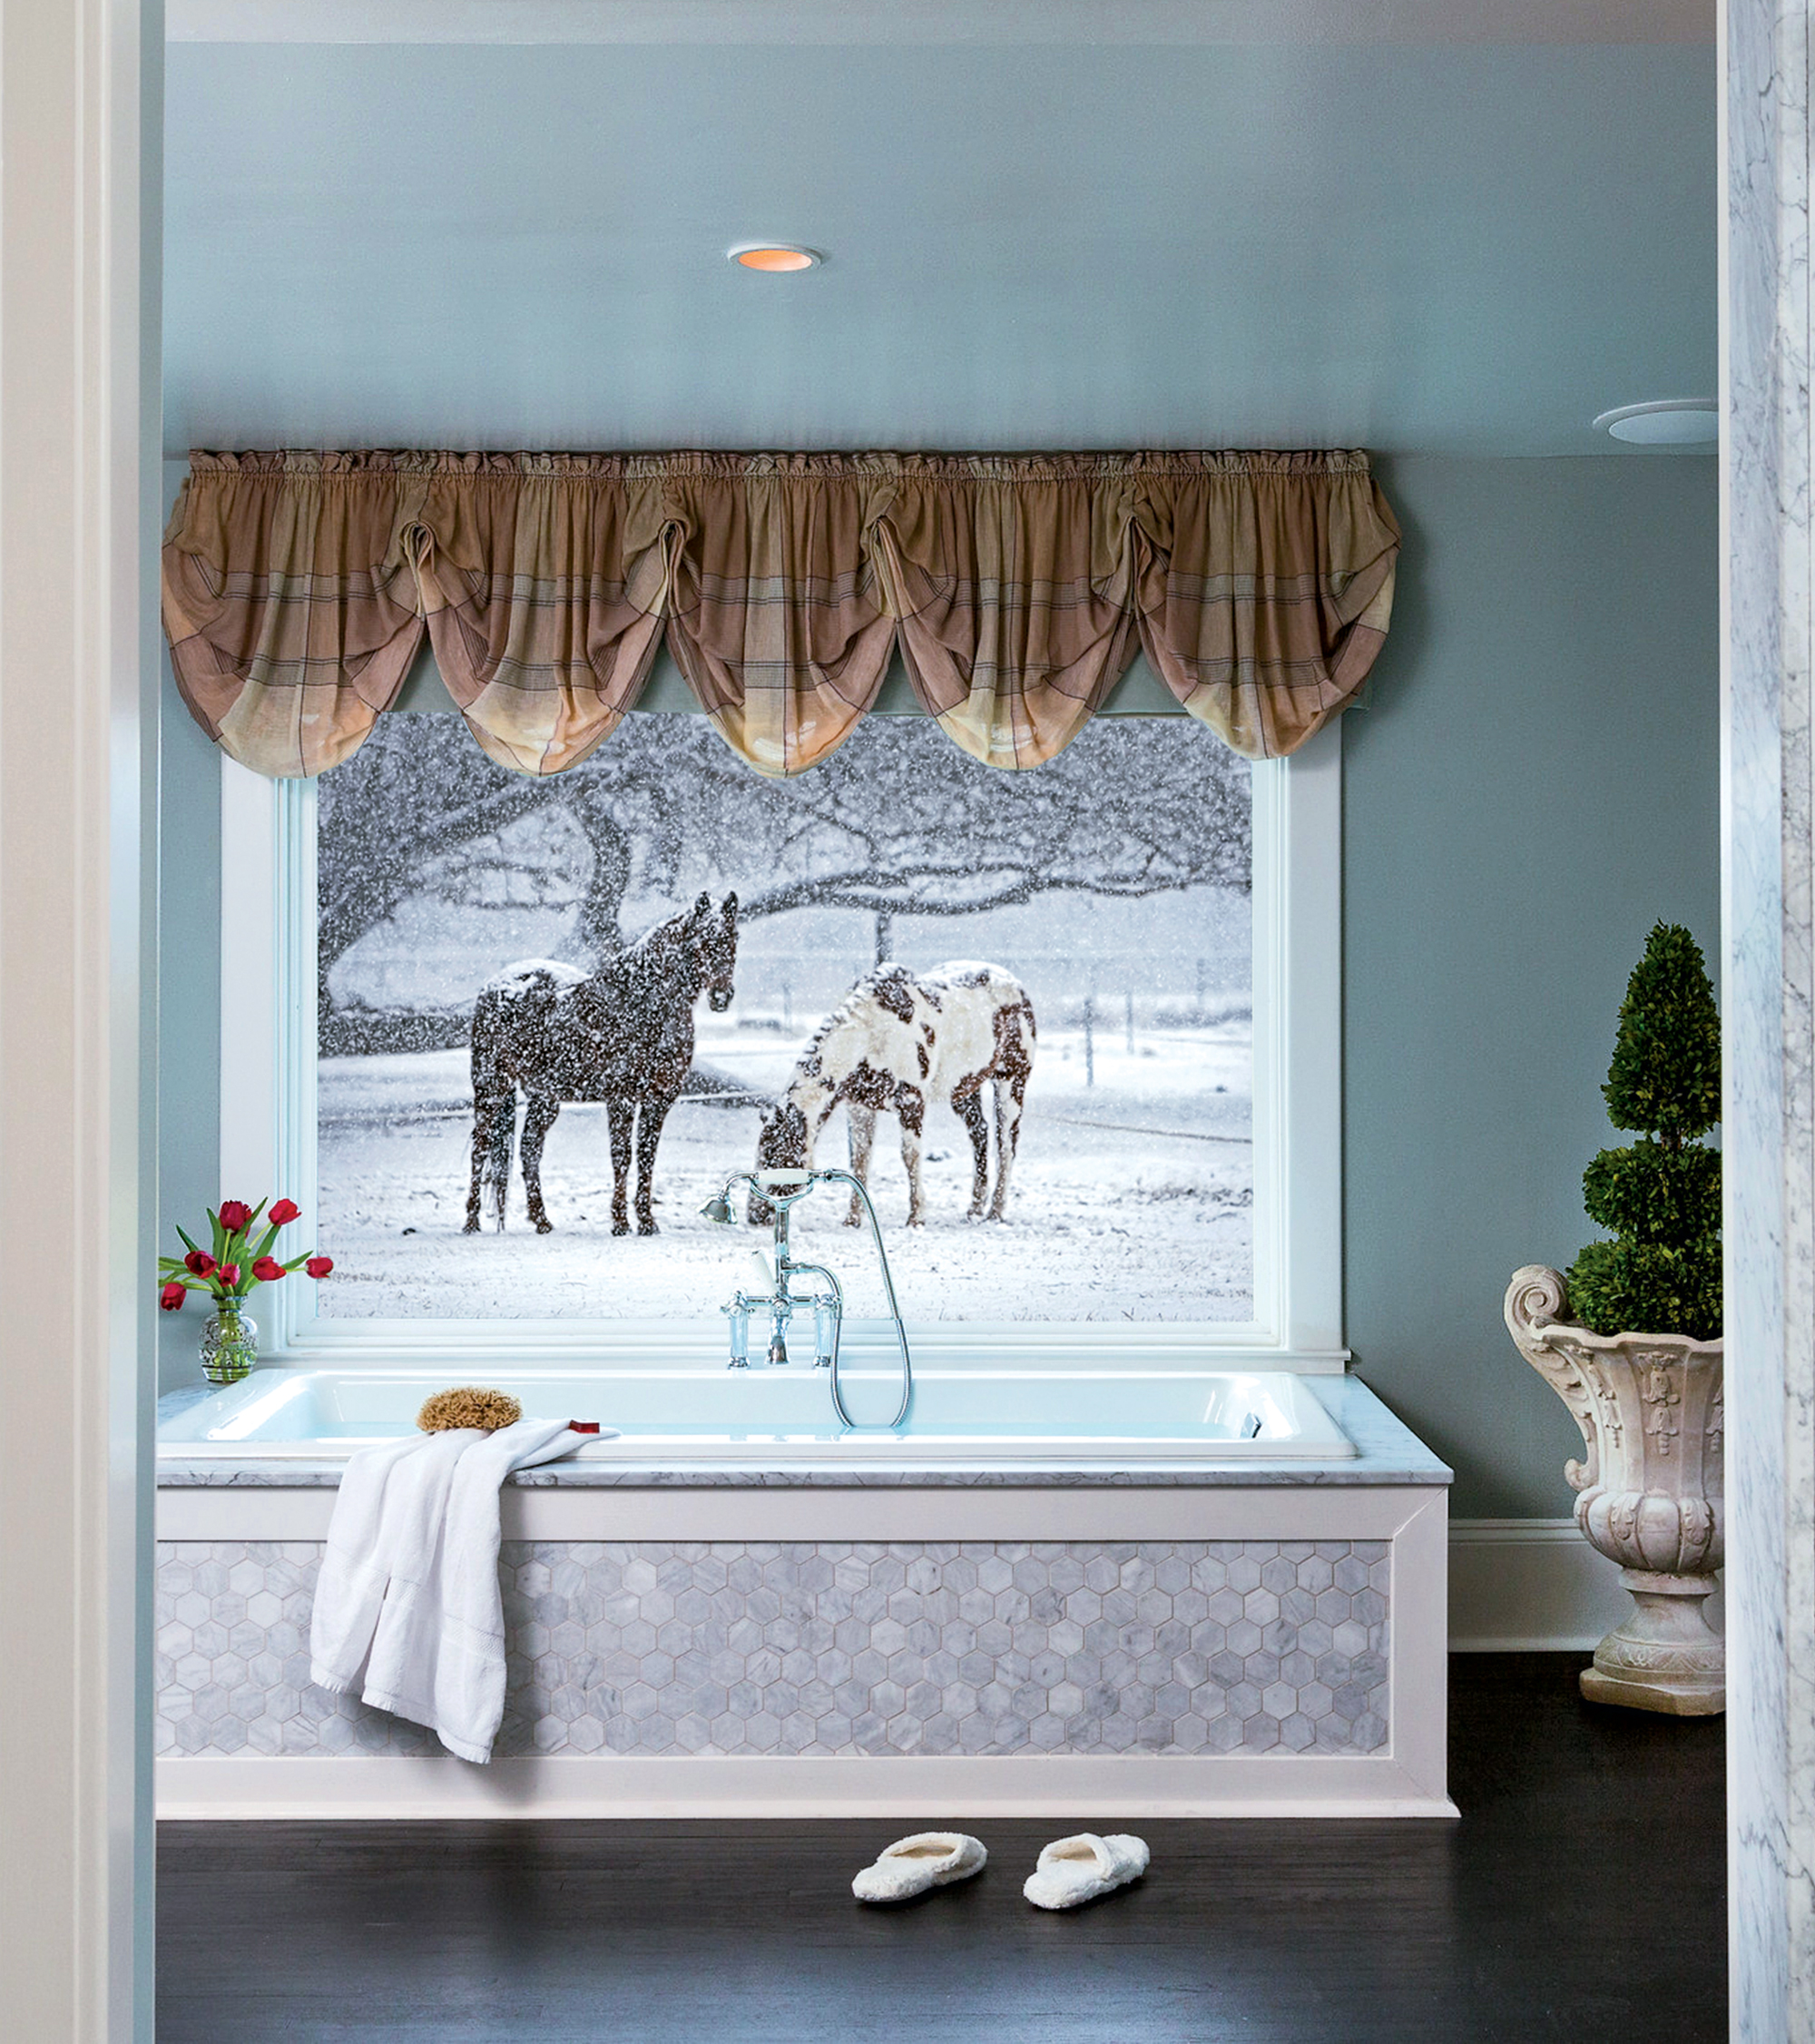 100 Very Best Restaurants, February 2019. Getaways for two: Glen Gordon Manor's Windsor Suite has a soaking tub that overlooks a field of horses. Photograph courtesy of Glen Gordon Manor.